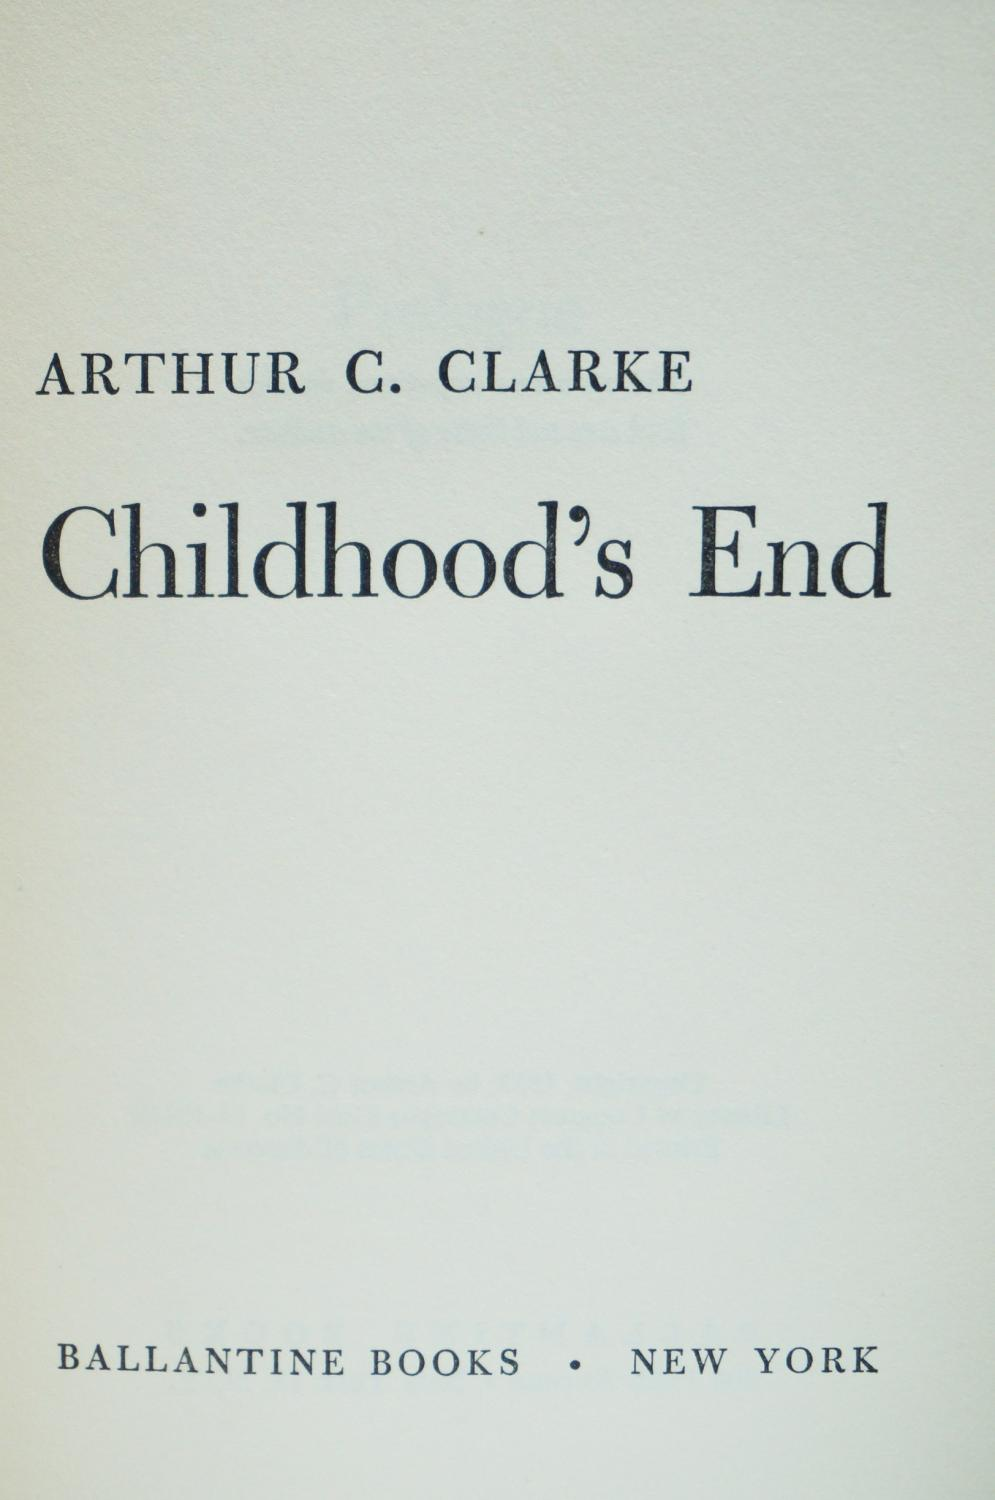 an analysis of the novel childhoods ends by arthur c clarke Dive deep into arthur c clarke's childhood's end with extended analysis, commentary, and discussion  childhood's end analysis arthur c clarke  the opening of the novel describes an arms .